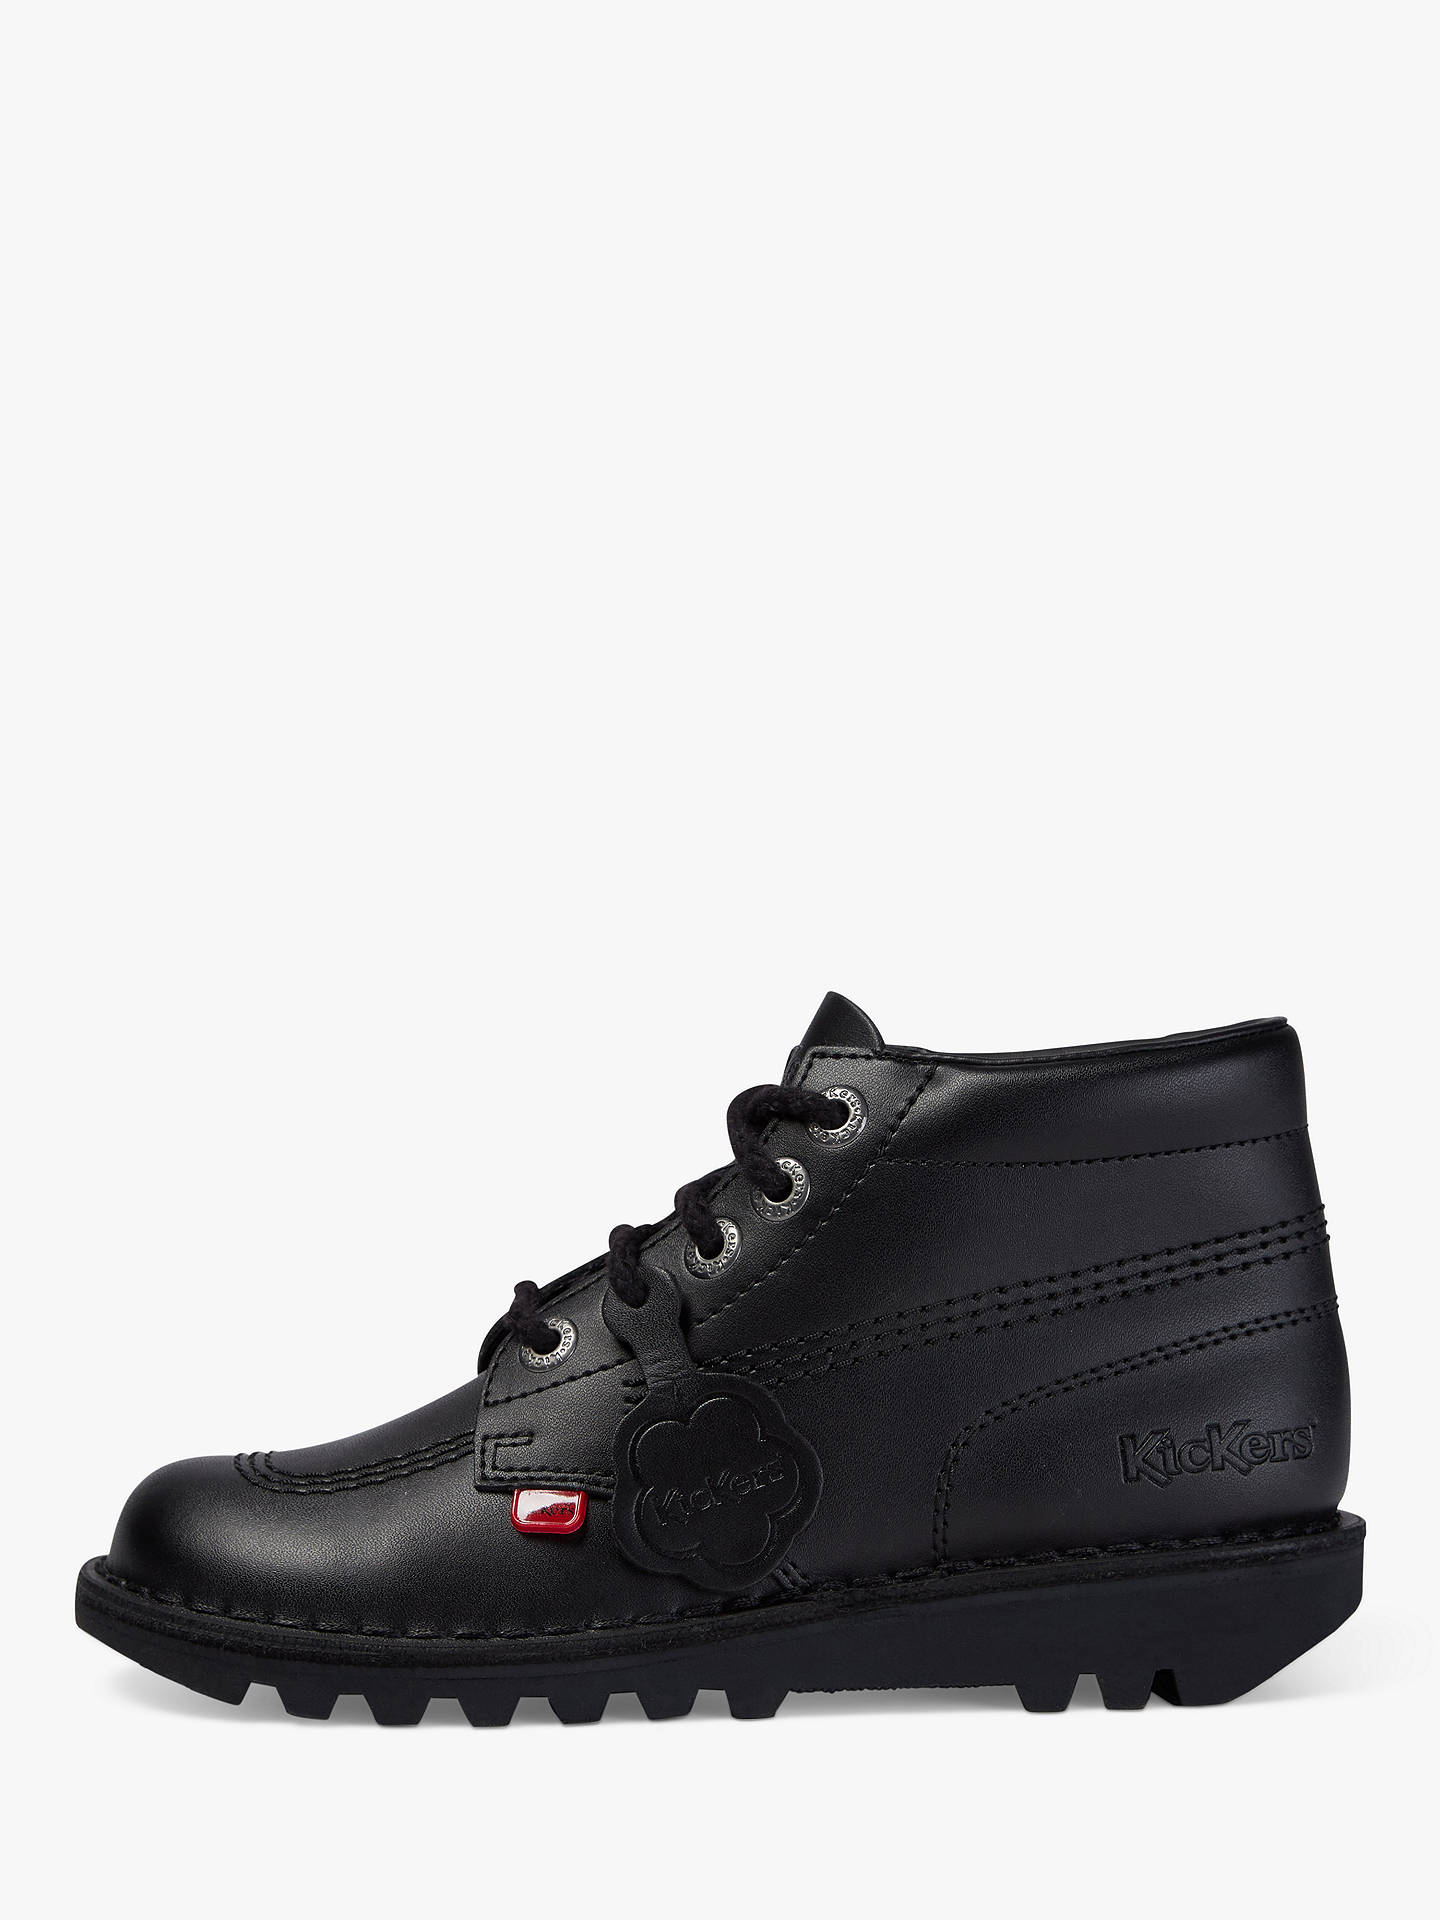 Buy Kickers Children's Leather Lace-Up Hi Boots, Black, 40 Online at johnlewis.com